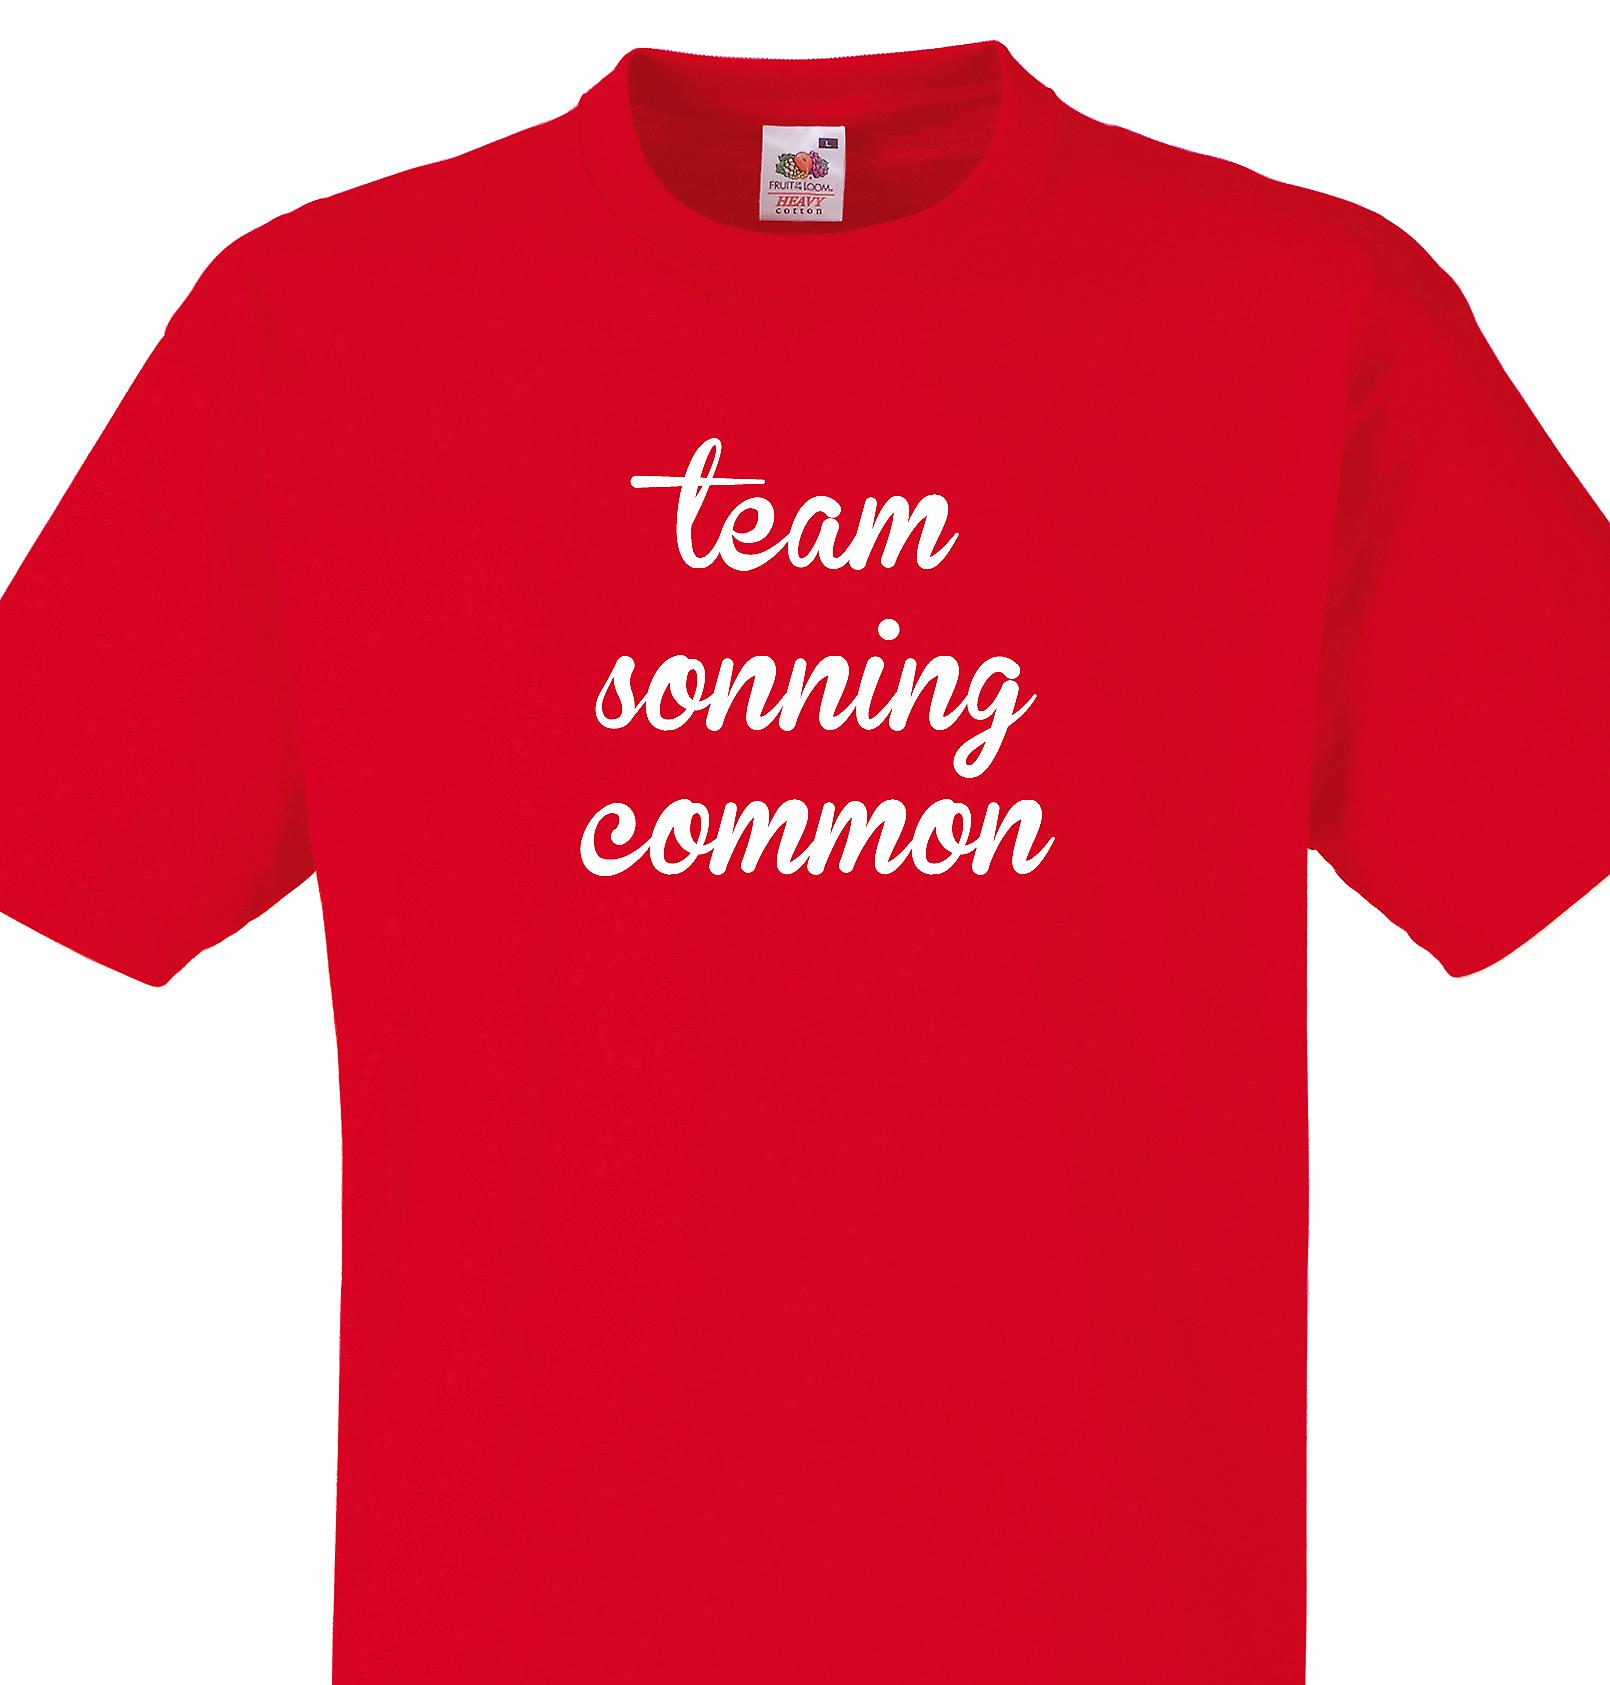 Team Sonning common Red T shirt